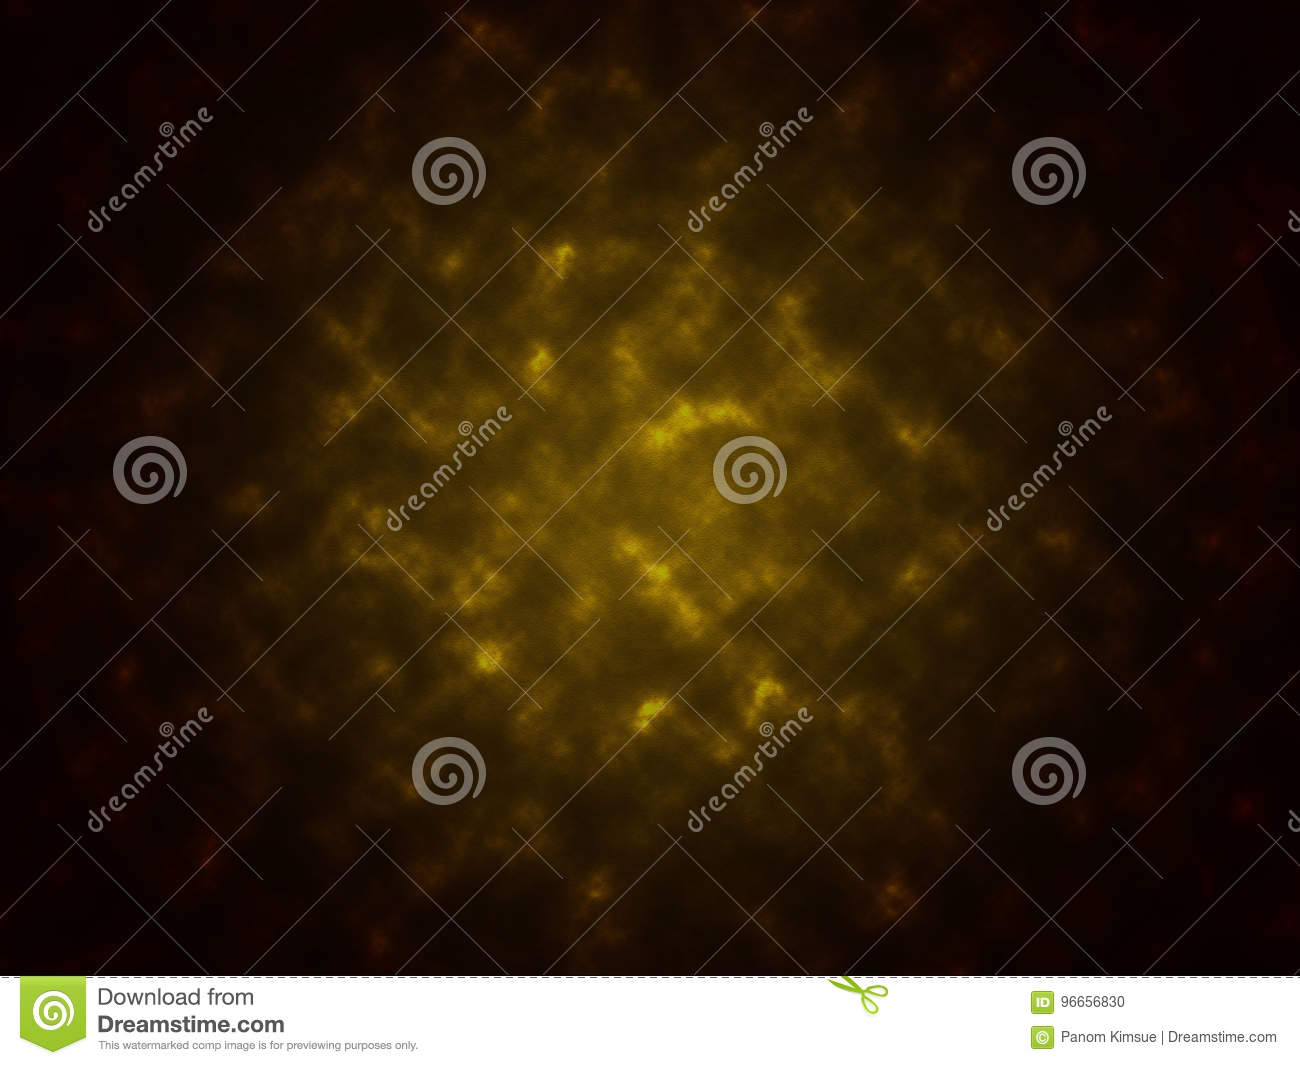 Smoke texture abstract black and yellow color background